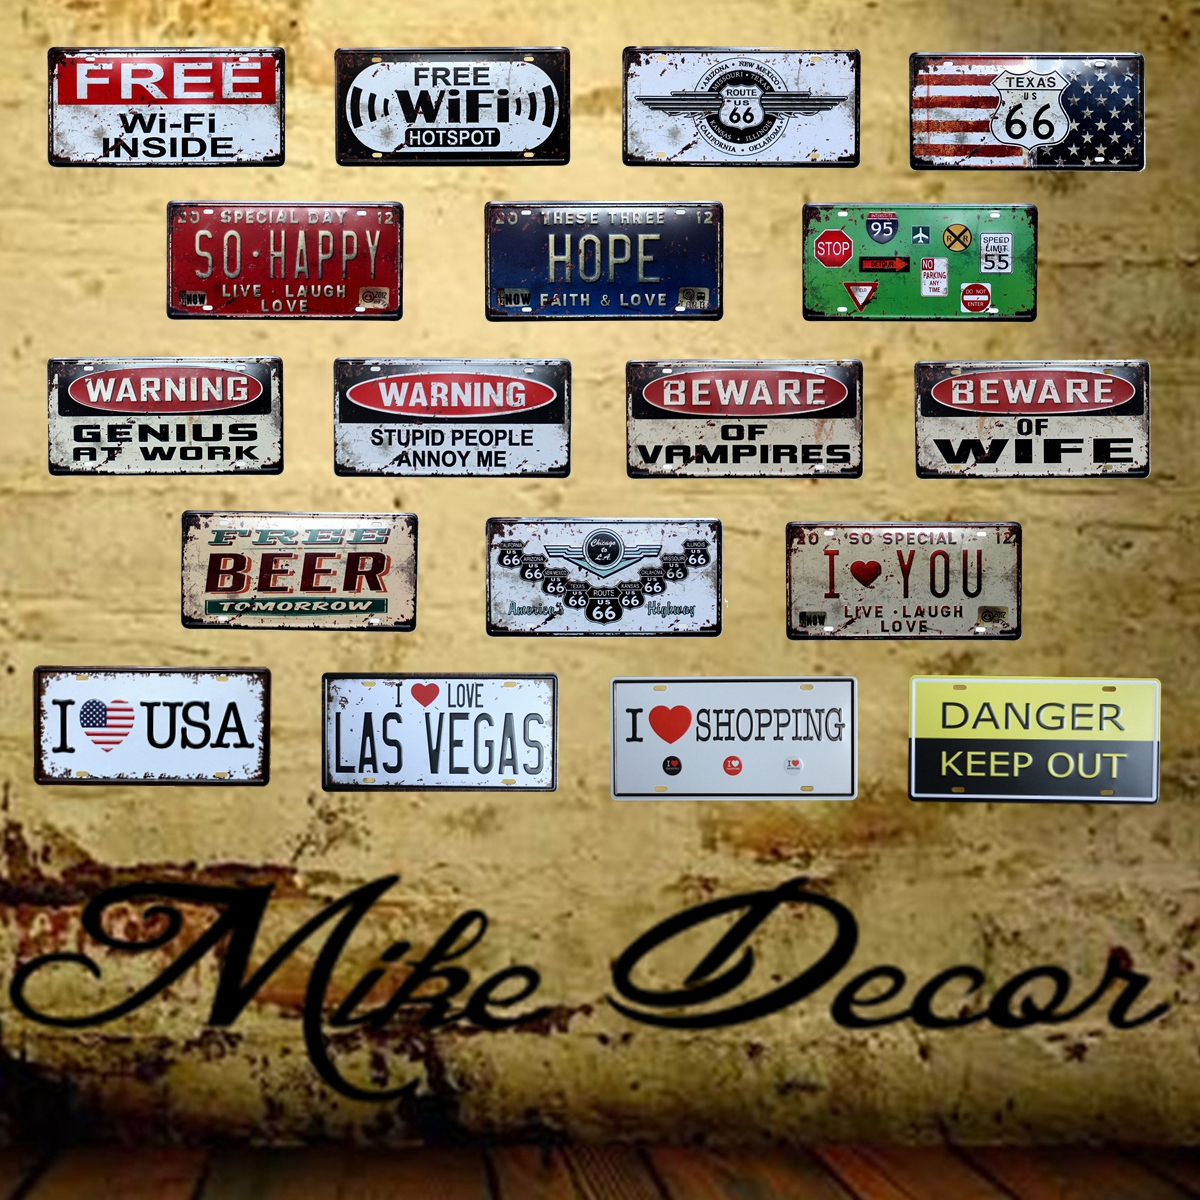 [Mike86] 2017 New WiFI Route66 Metal Sign Antique Craft Bar Home Tin Wall Plaque Decorazione 30 * 15 CM FG-113